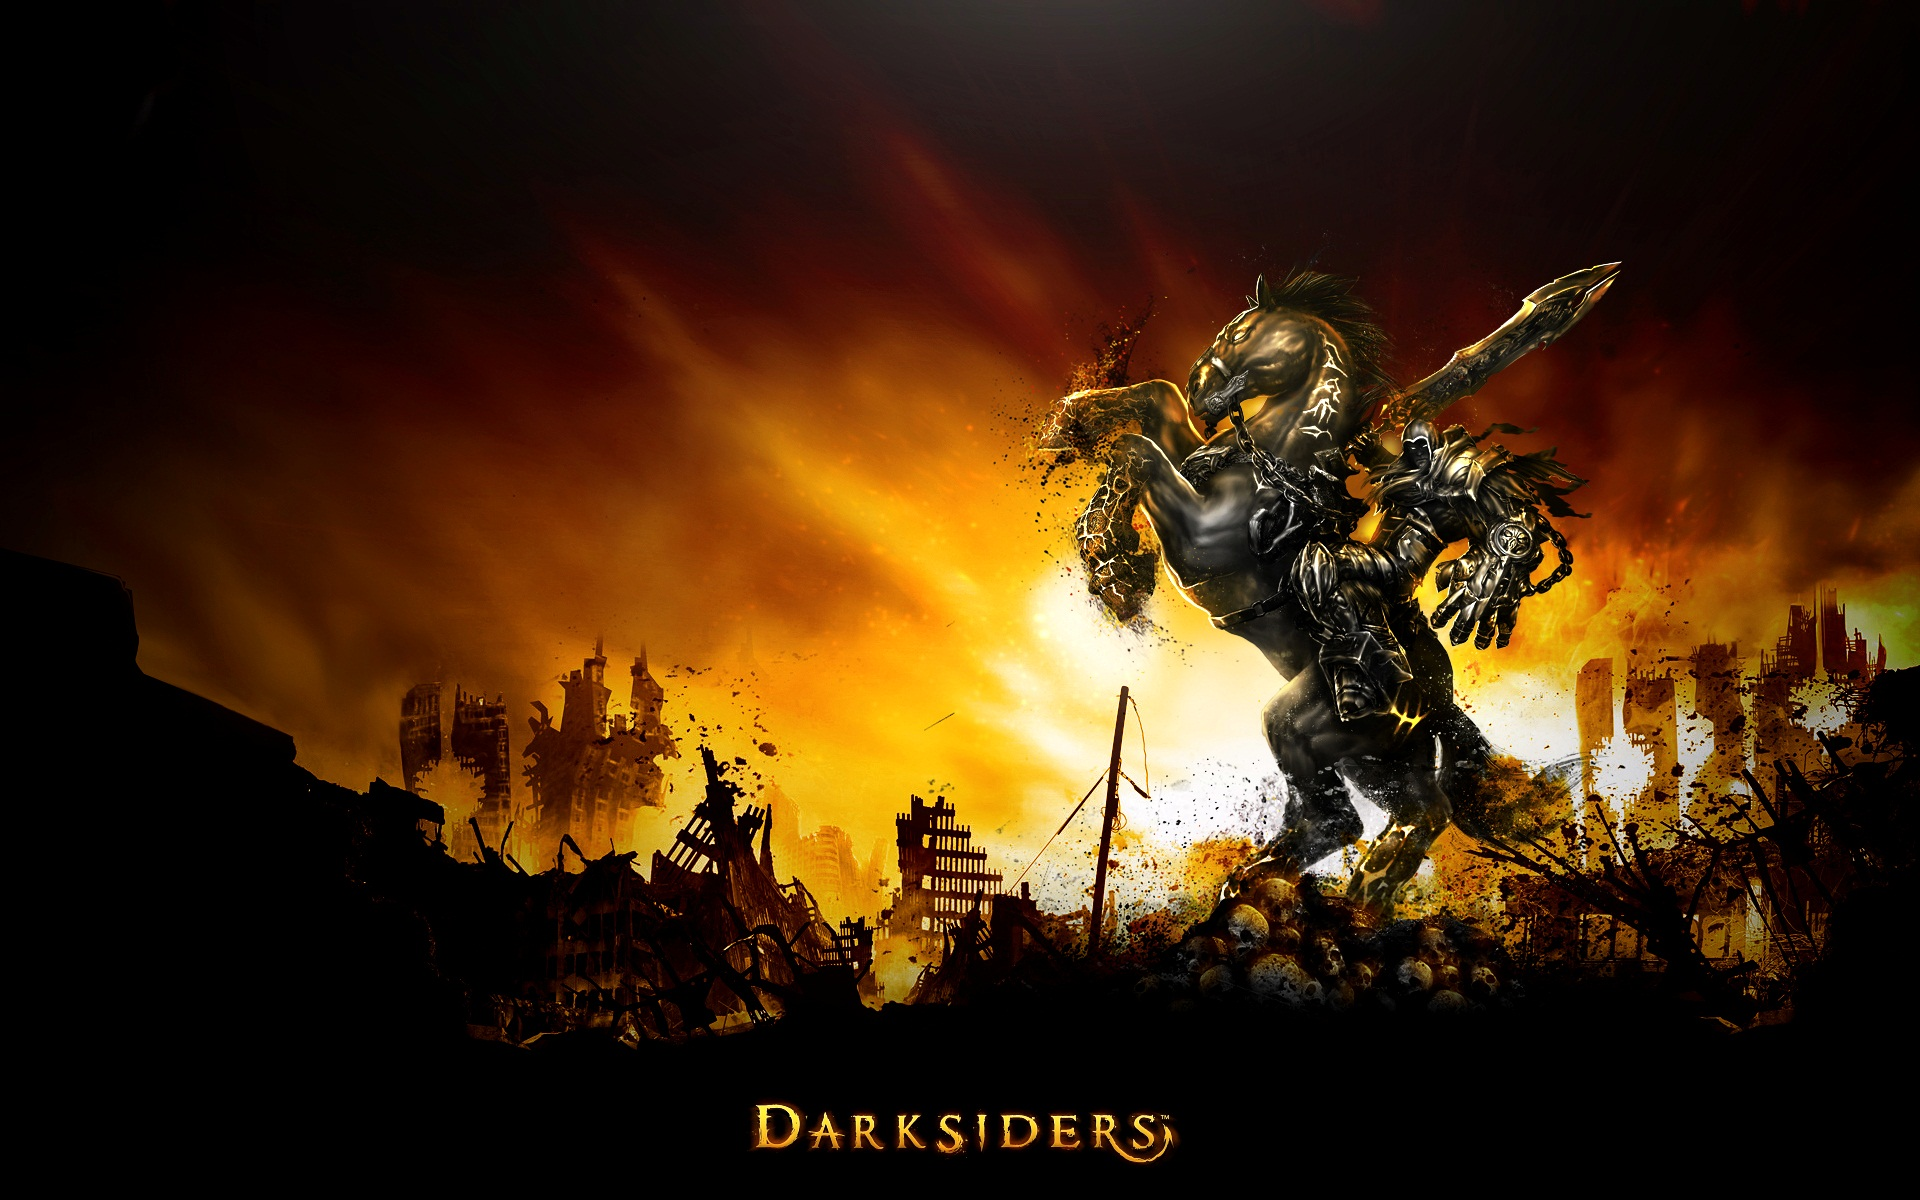 Darksiders Wallpapers HD Wallpapers 1920x1200